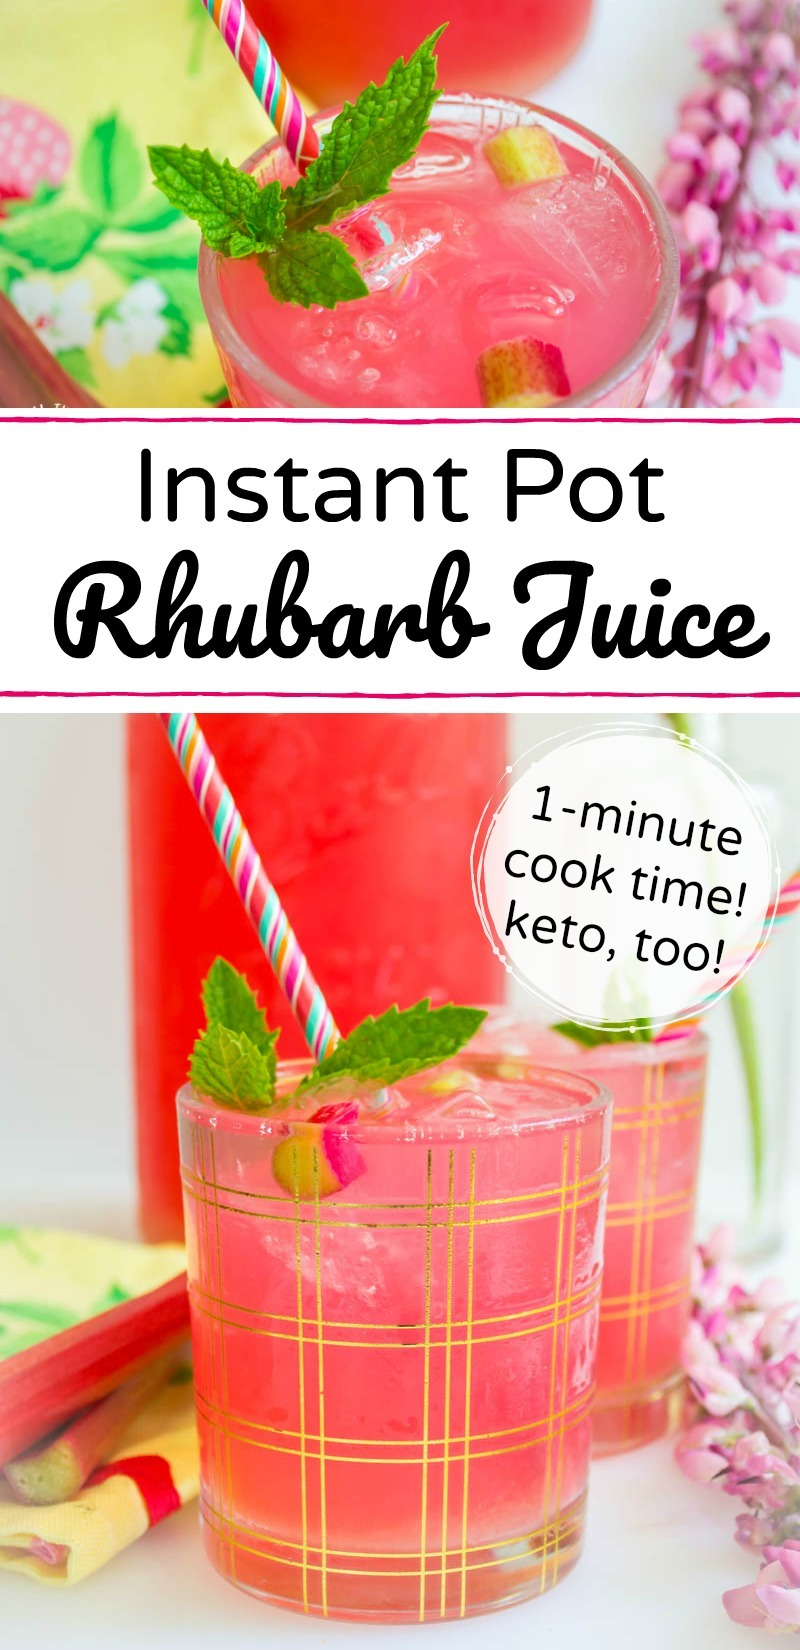 instant pot rhubarb juice with text overlay